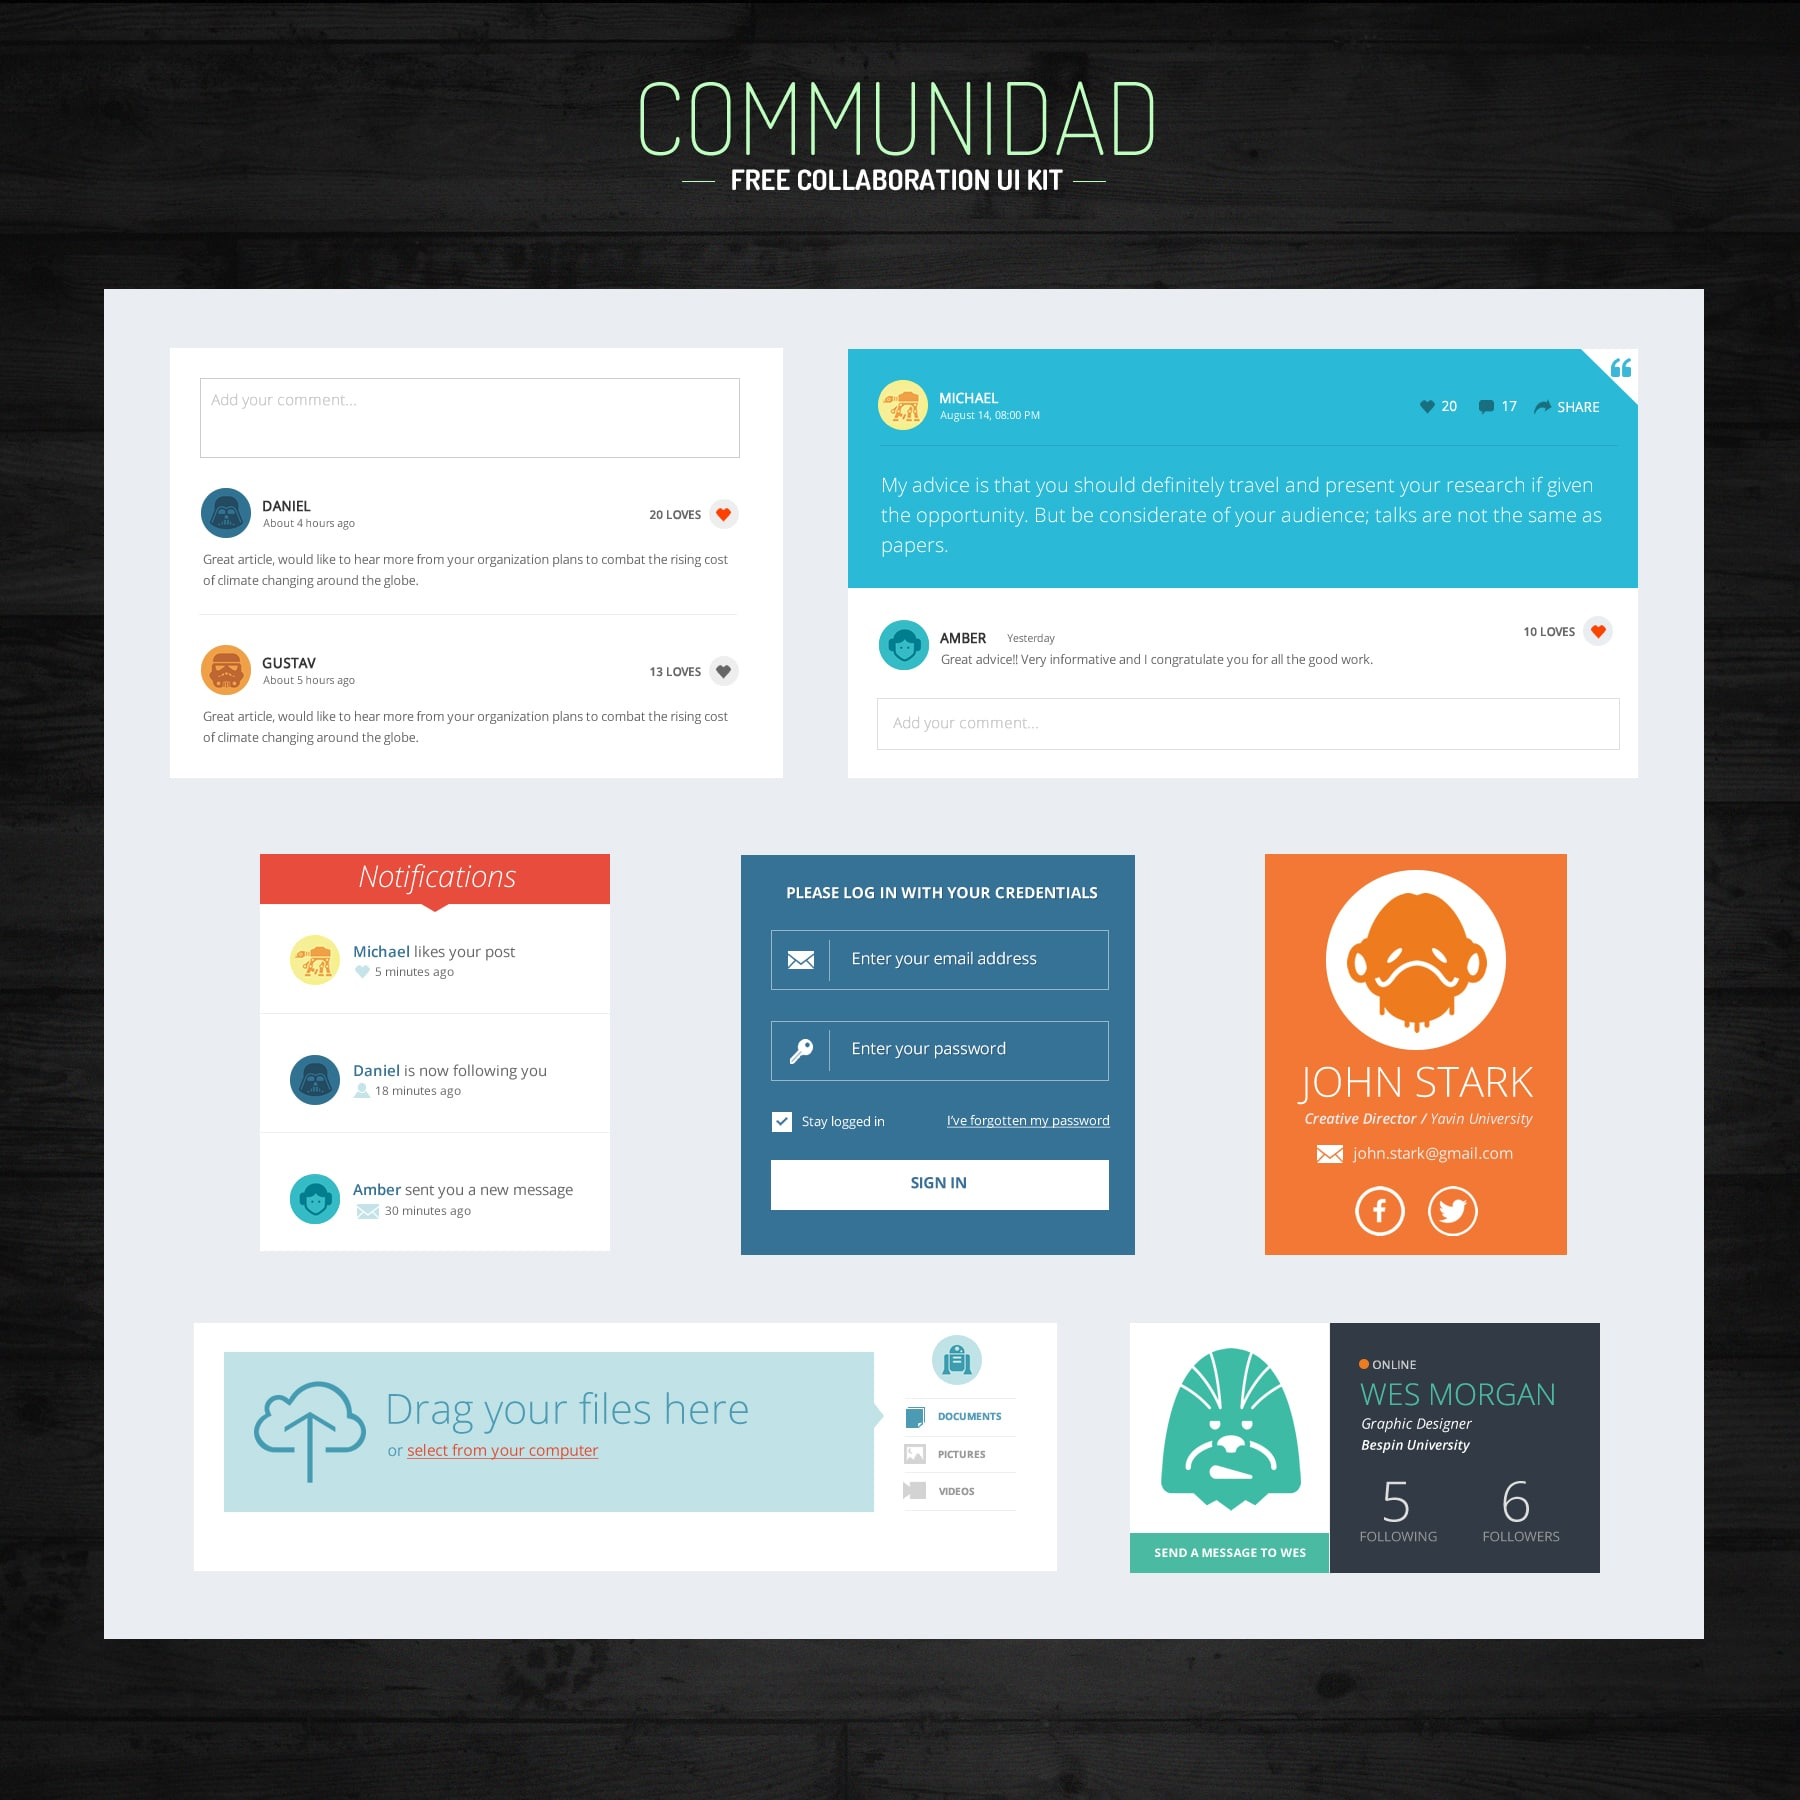 Communidad UI Kit